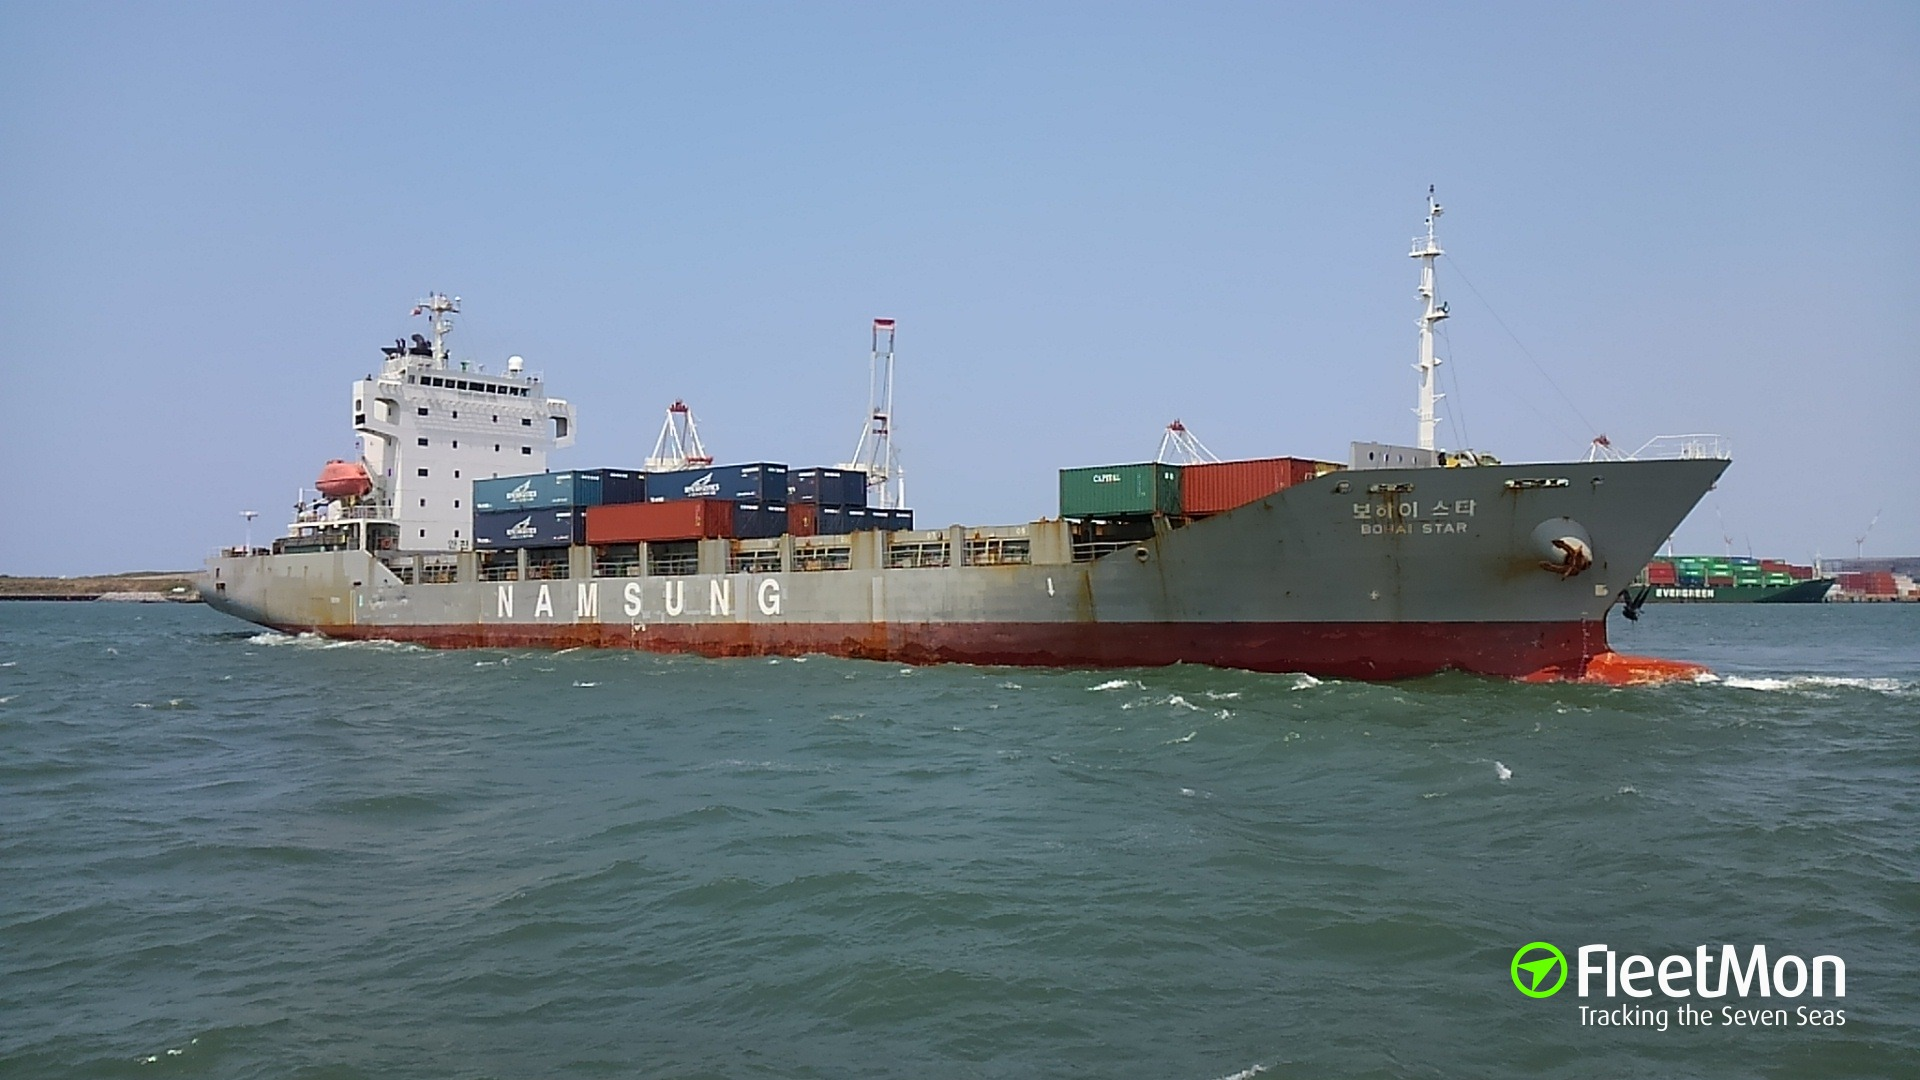 Japanese fishing vessel sank after collision with boxship Bohai Star, Korea Strait